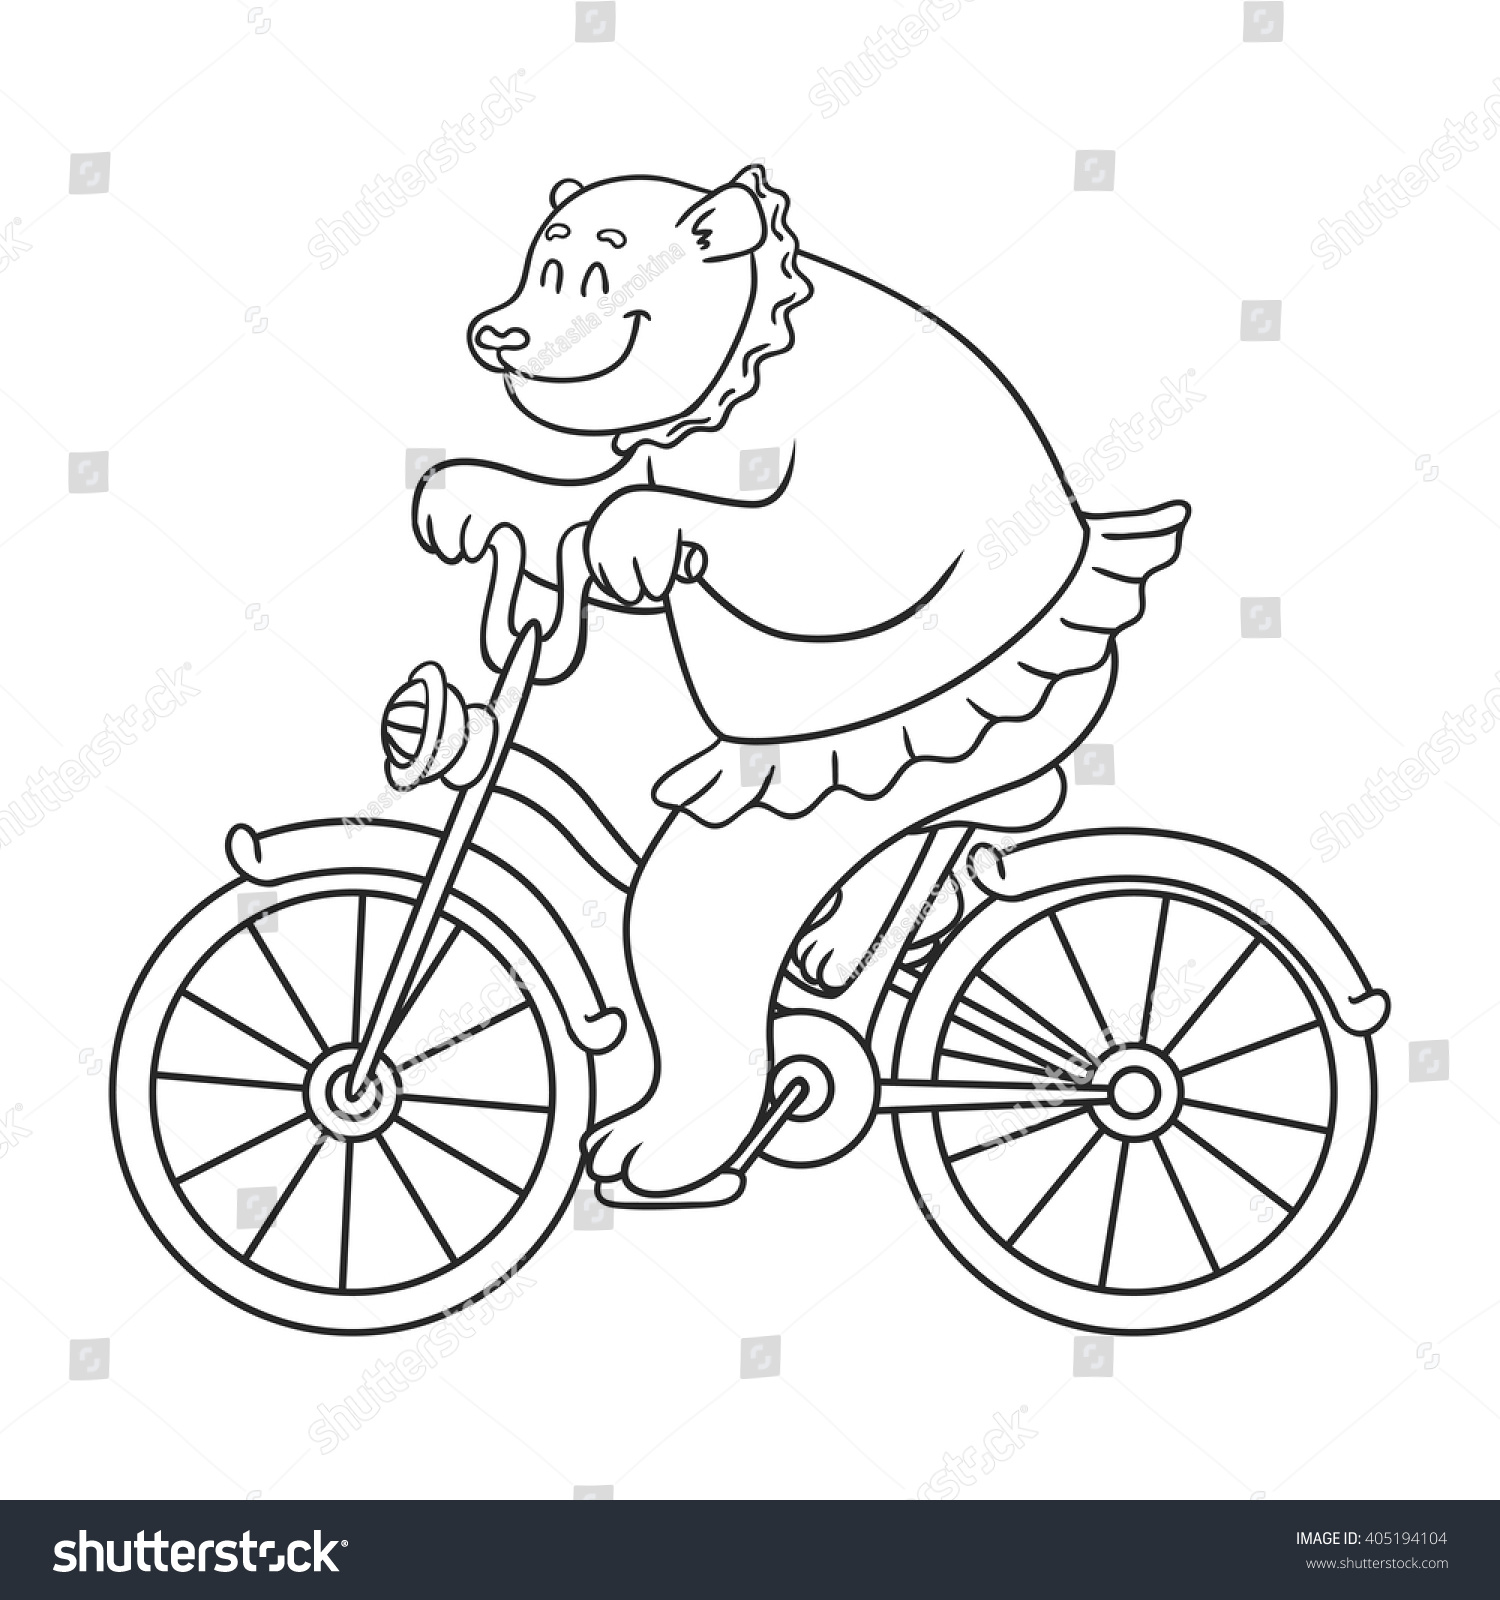 bear riding on a bicycle vector illustration coloring book - Bicycle Coloring Book